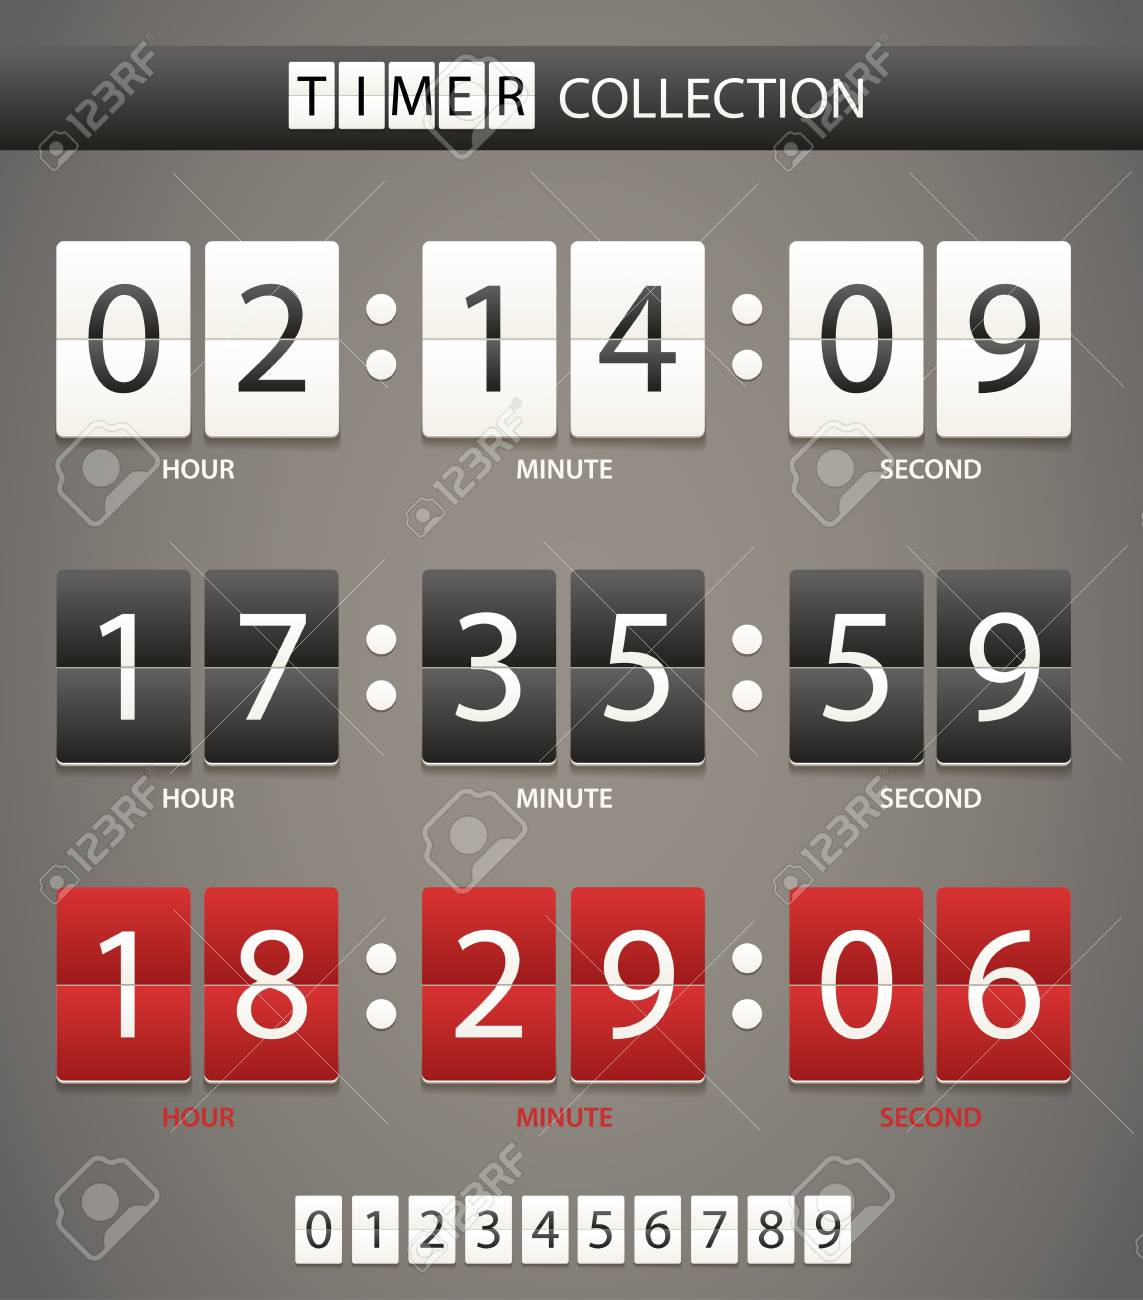 Colleccton of different color digital timers Stock Vector - 15059601